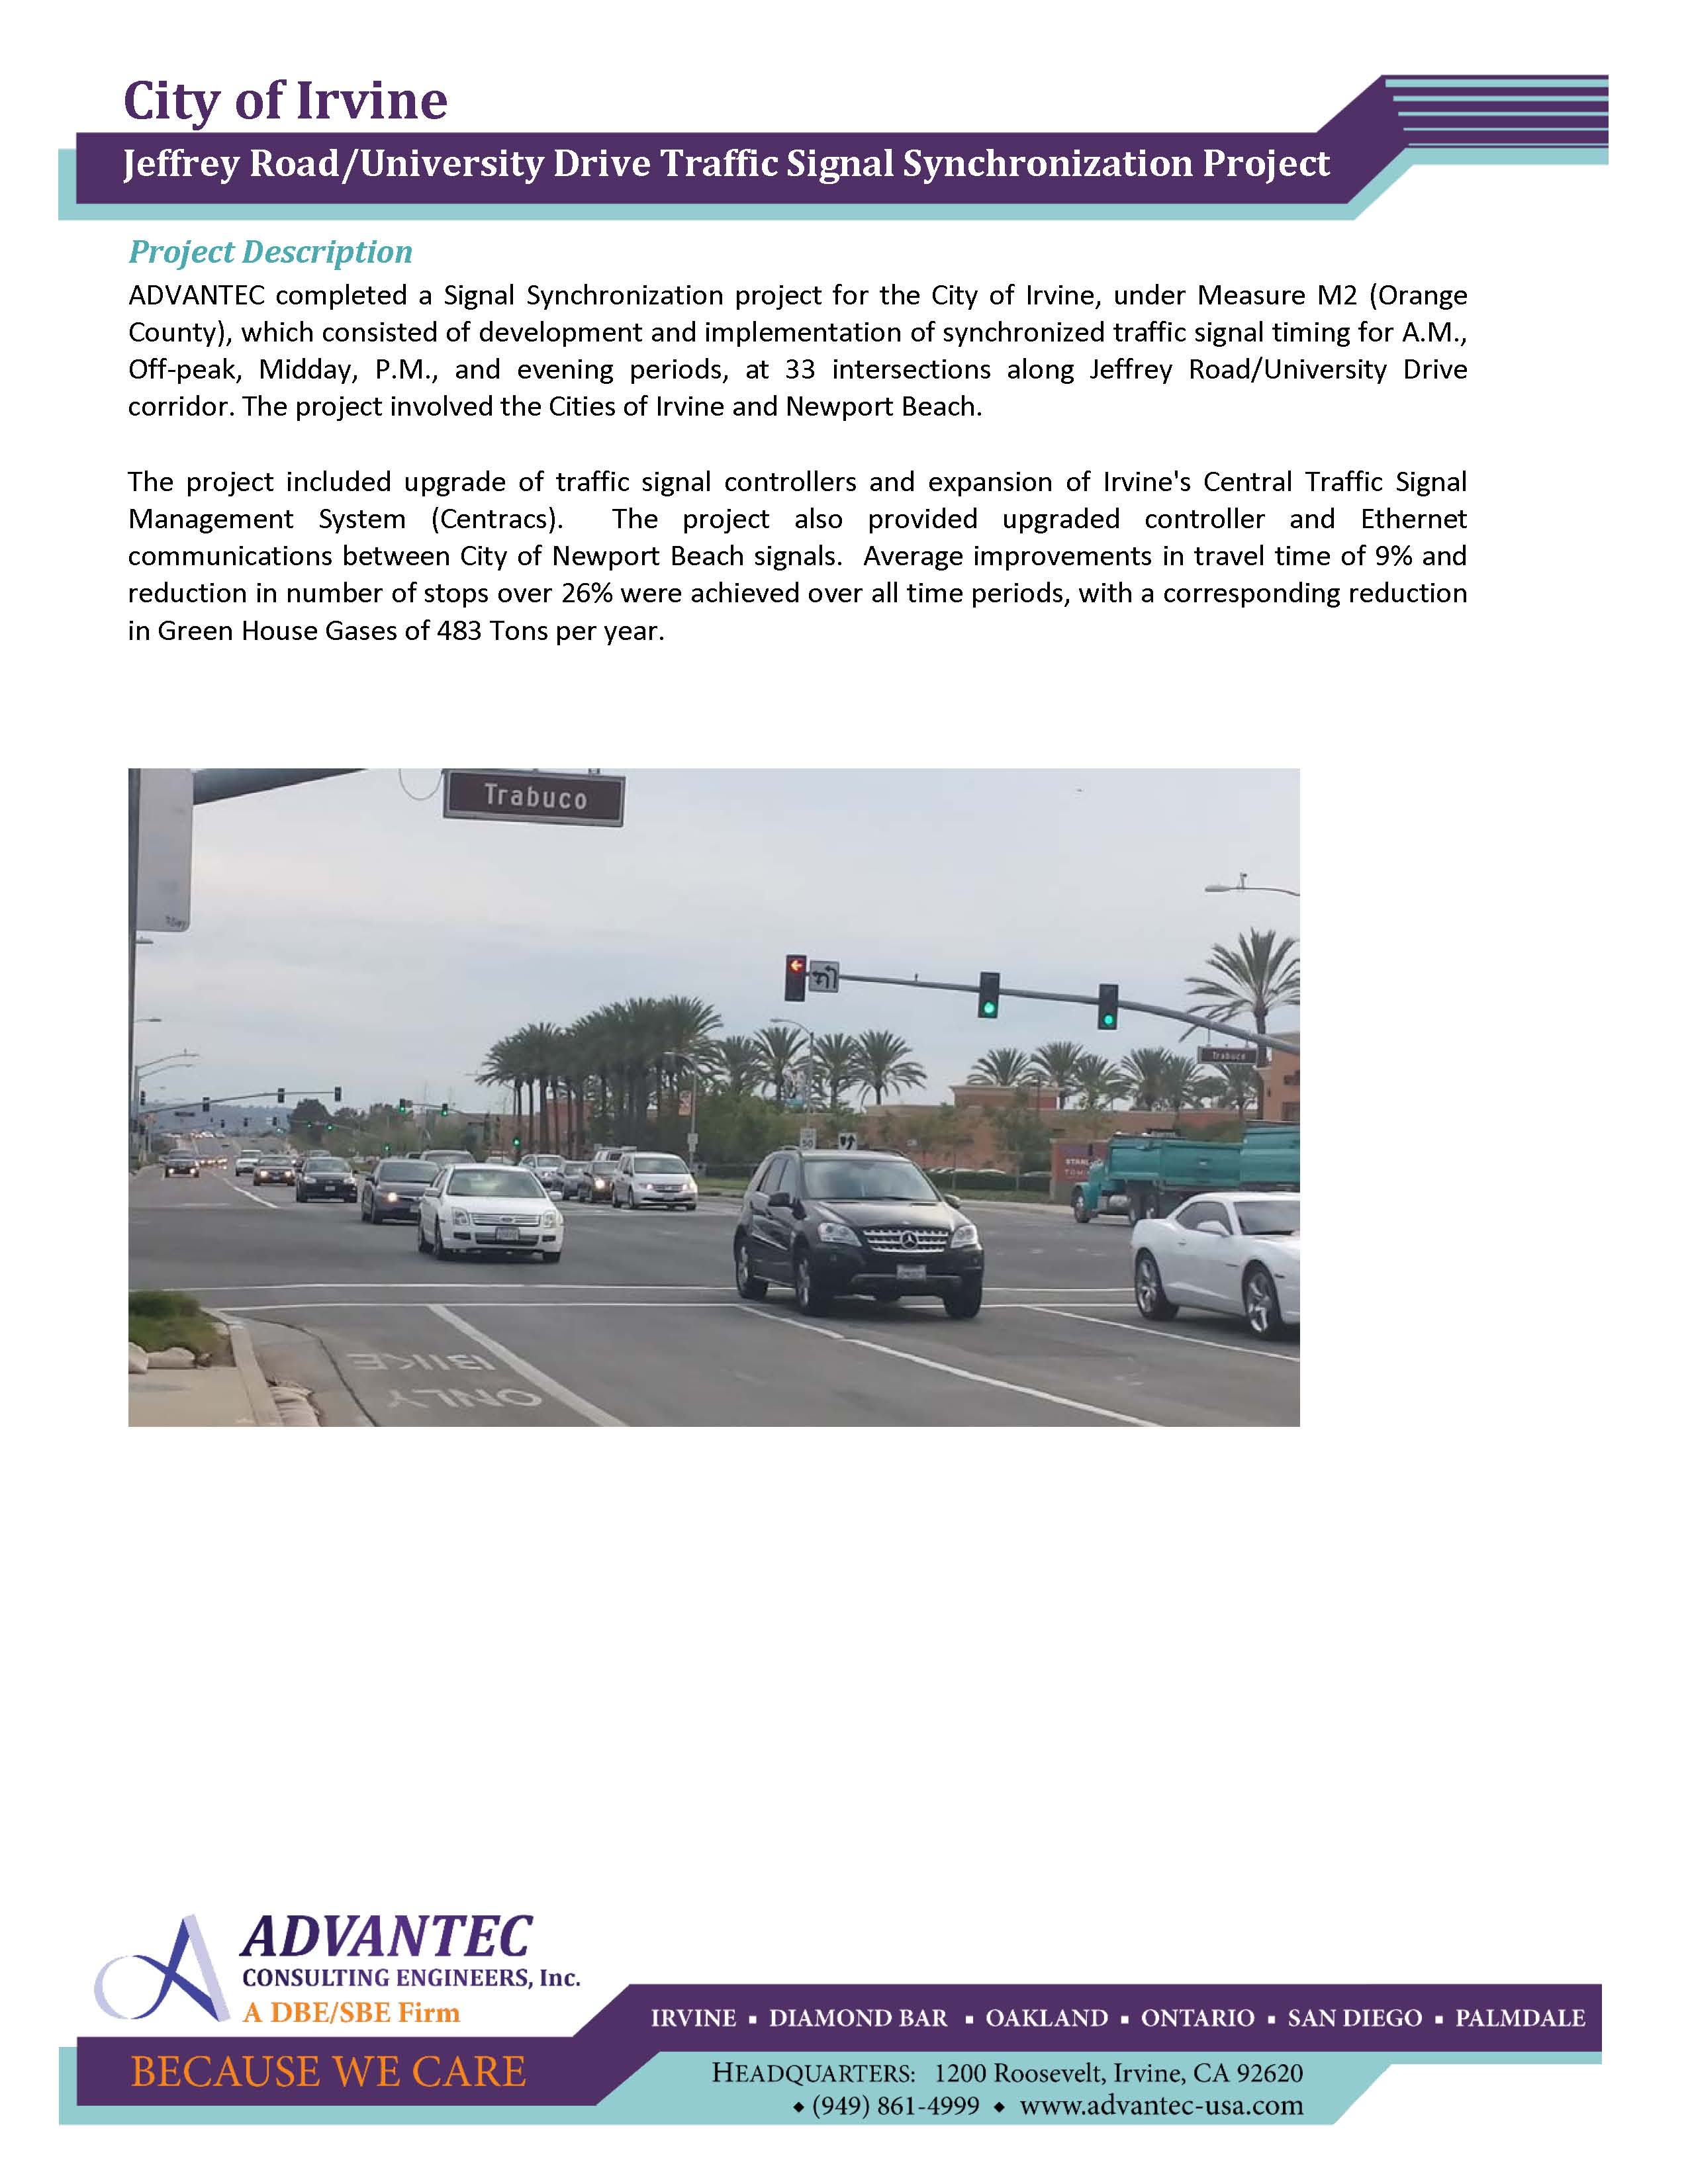 ^web-Irvine – Jeffrey Road and University Drive Traffic Signal Synchronization Project